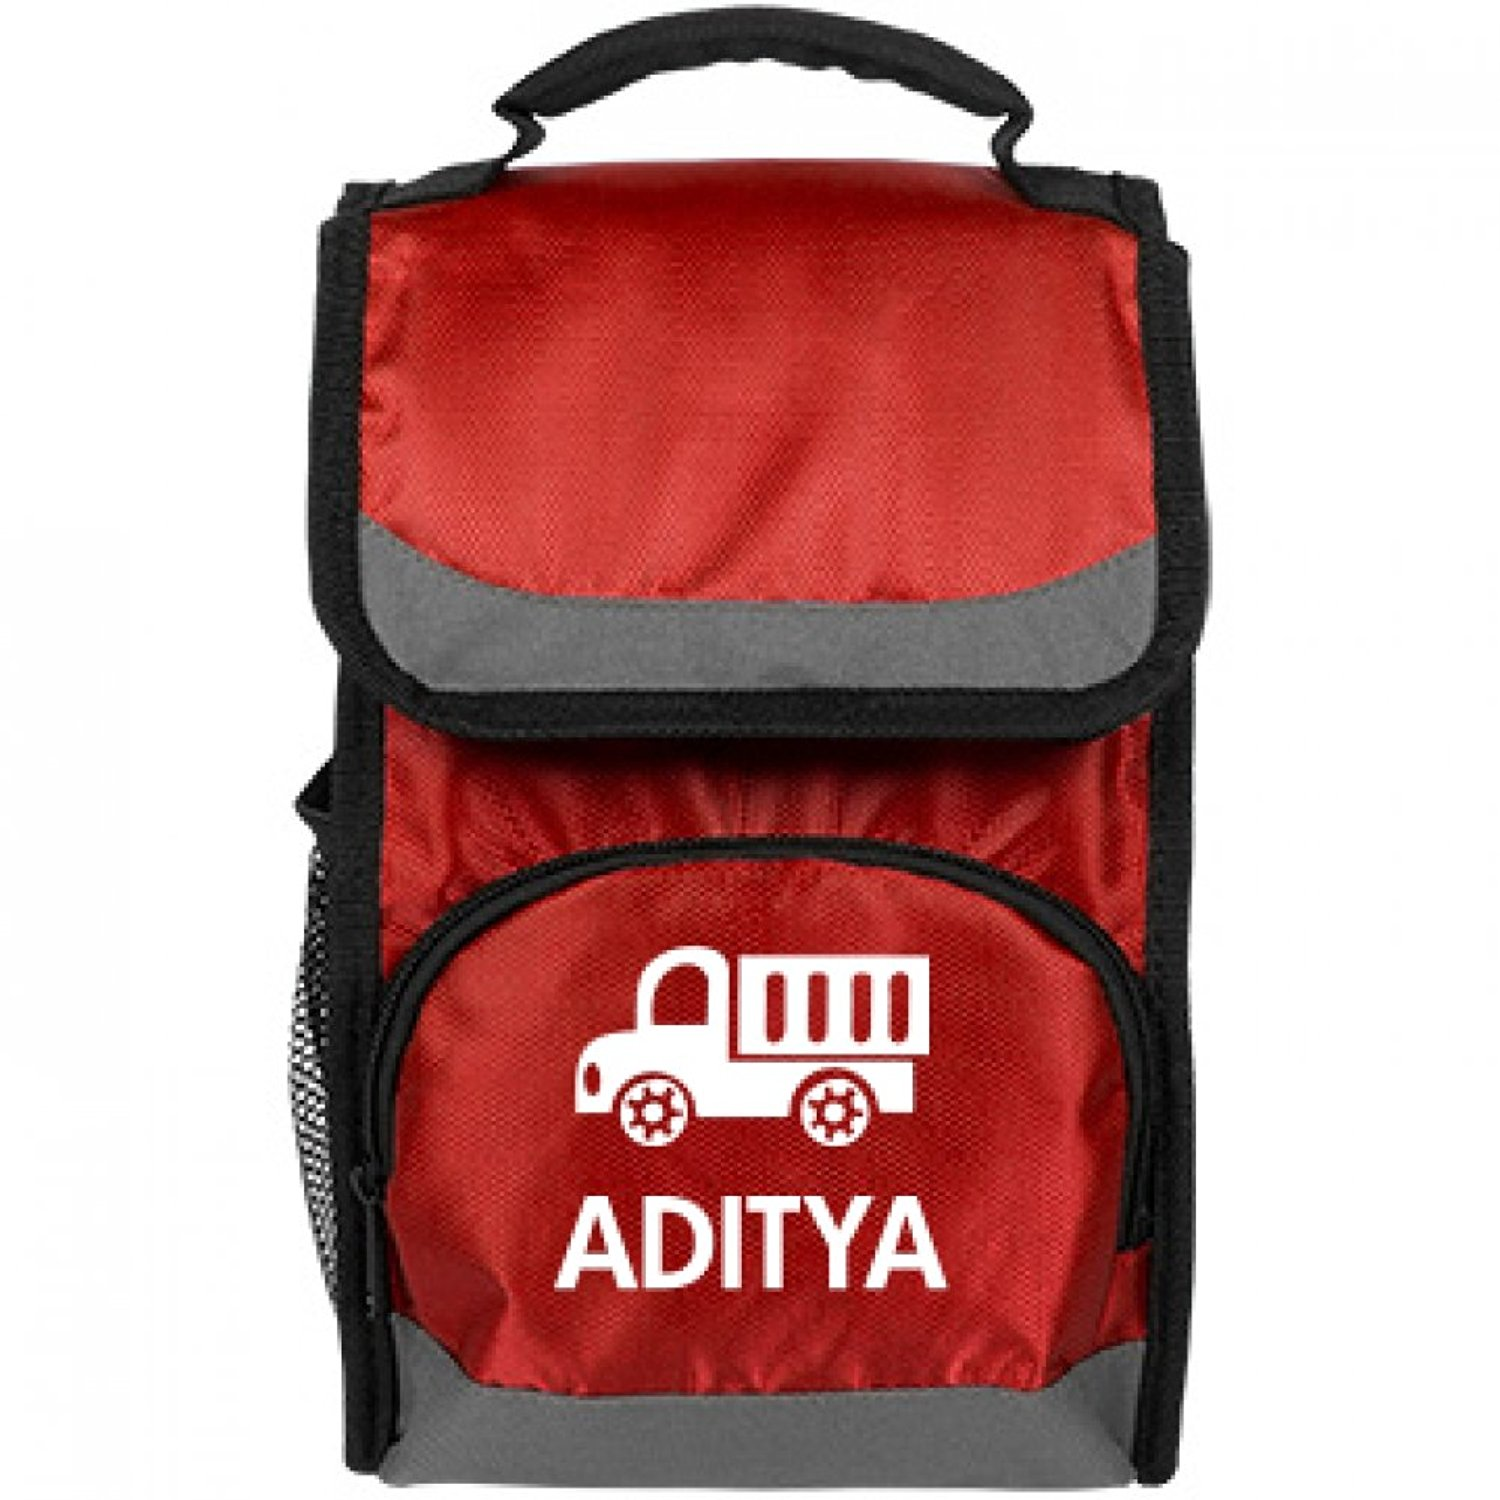 Kids Truck Lunch Bag For Aditya: Port Authority Flap Lunch Cooler Bag